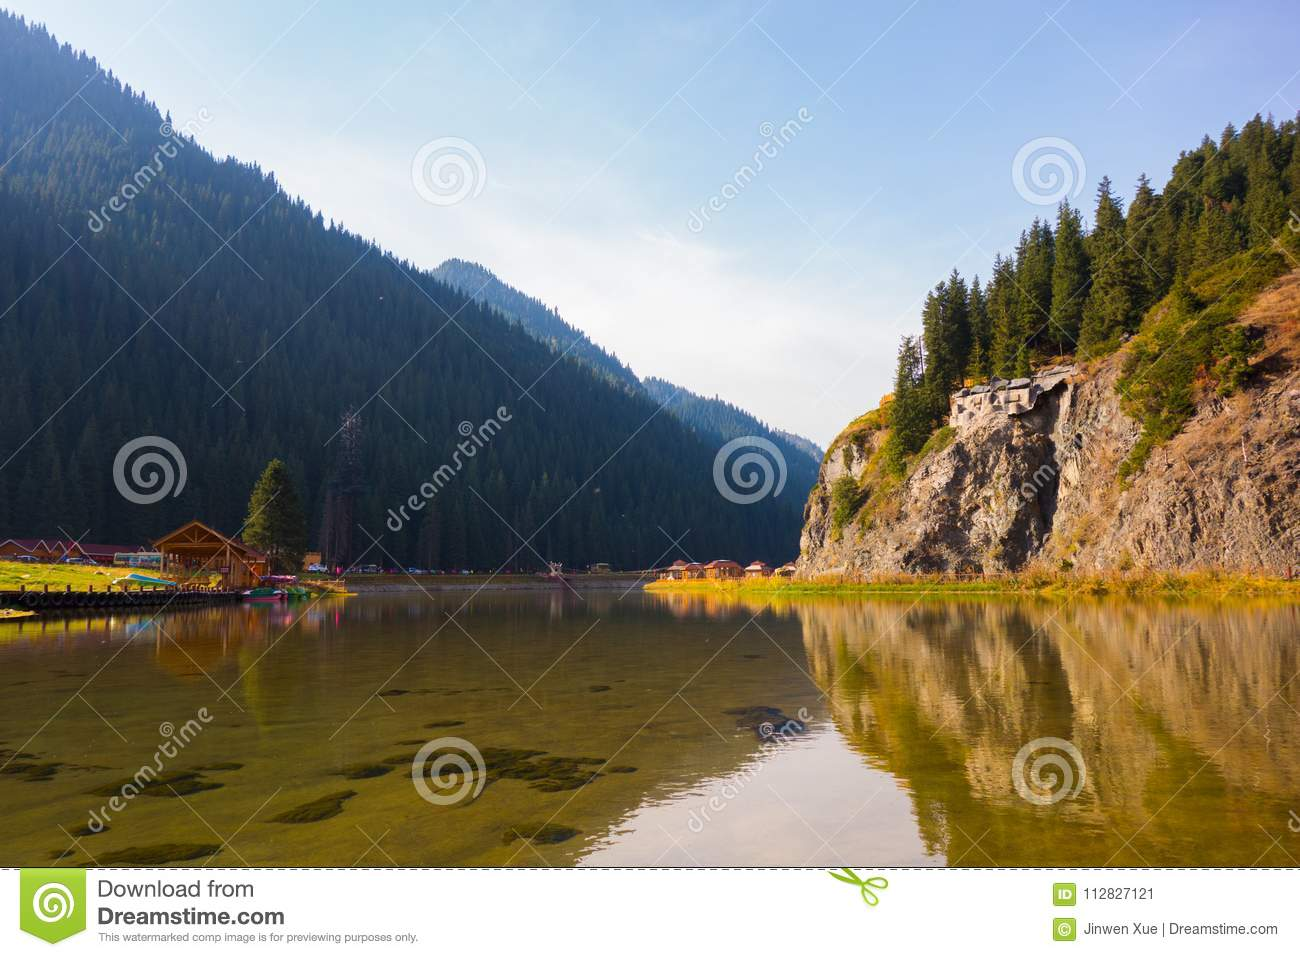 Lake, reflection, mountain, forest